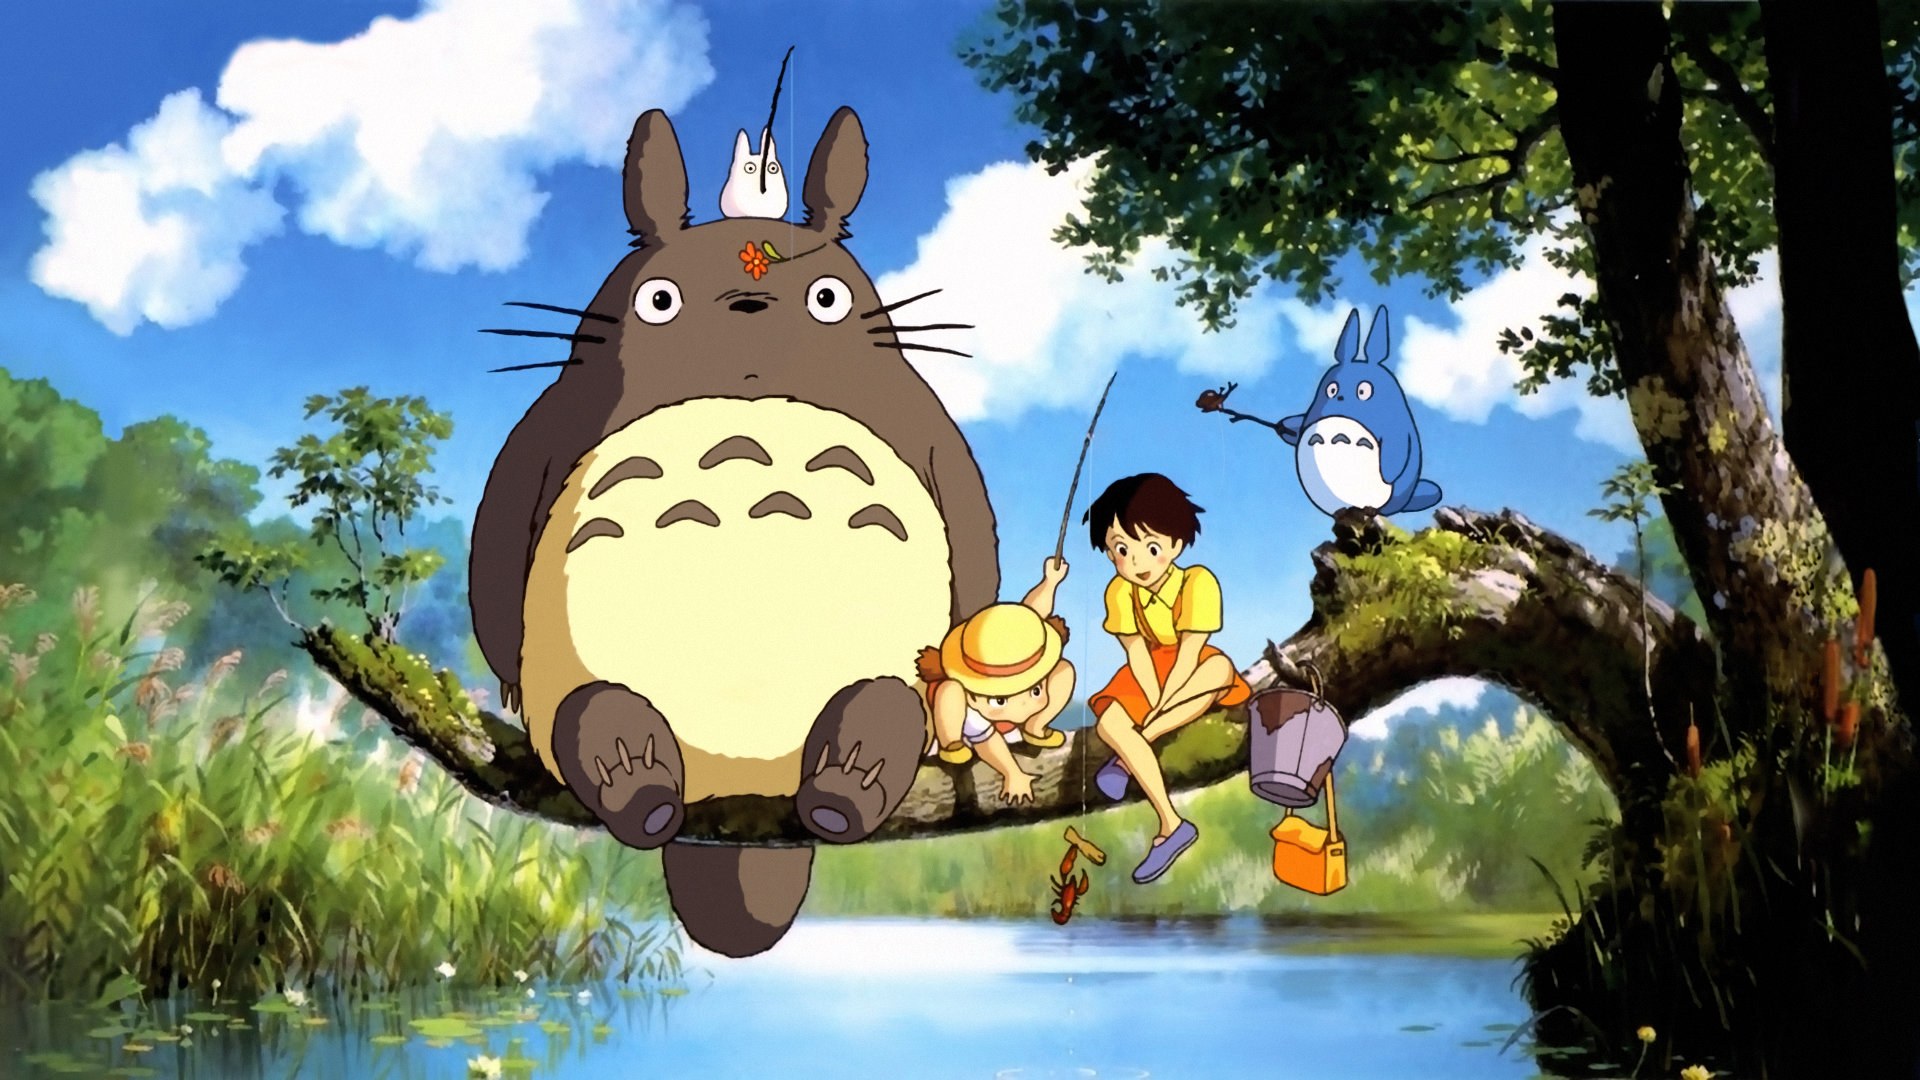 Download full hd 1080p My Neighbor Totoro desktop background ID:259318 for free